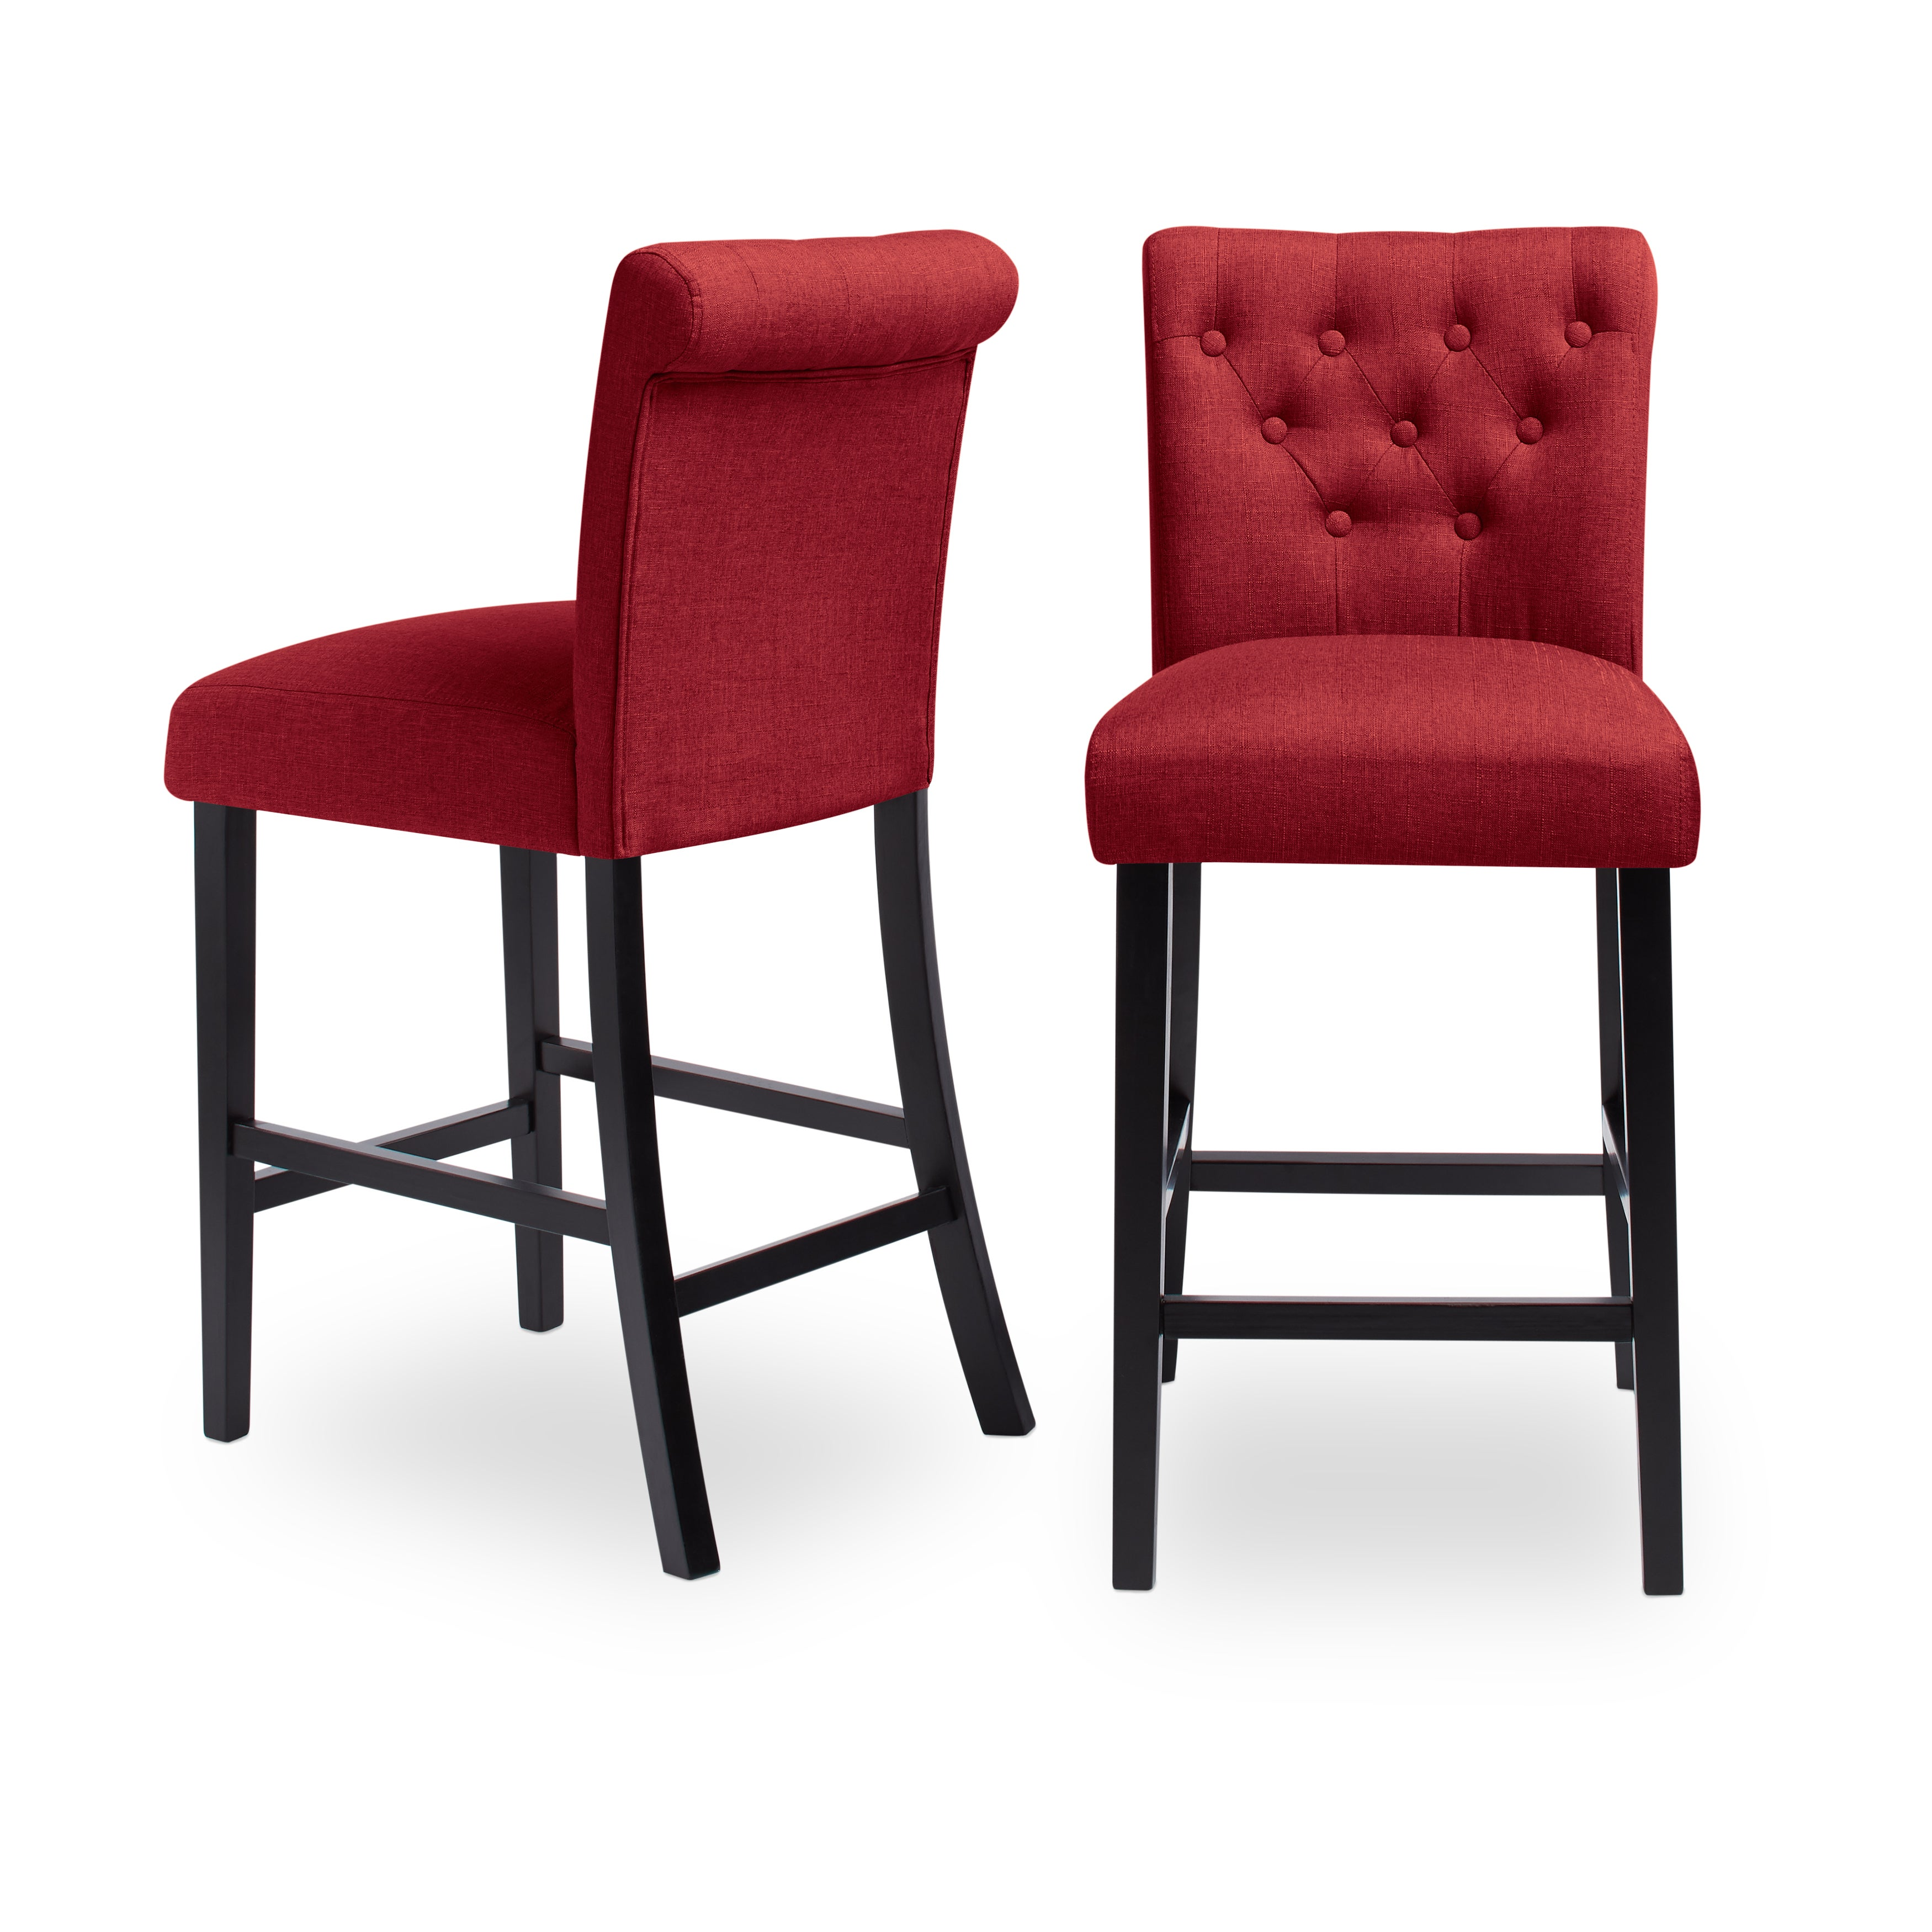 Sopri Upholstered Counter Chairs Set Of 2 On Free Shipping Today 9827854